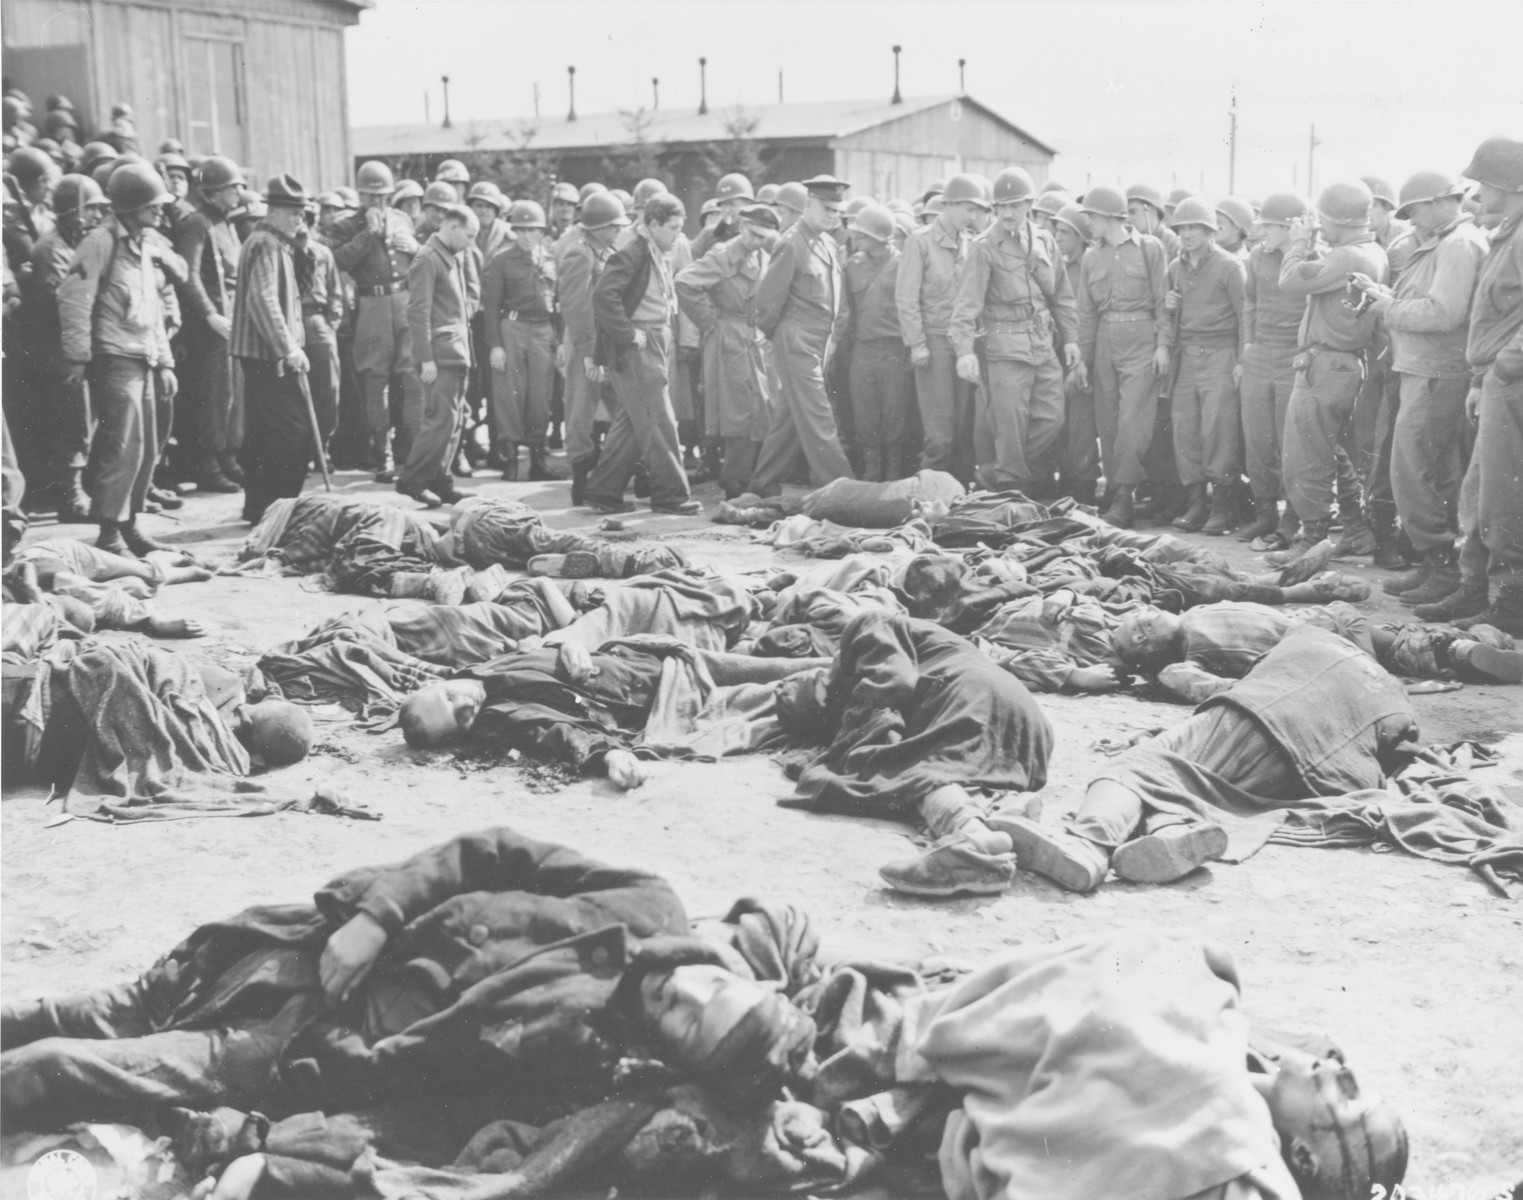 General Dwight Eisenhower and other high ranking U.S. Army officers view the bodies of prisoners who were killed during the evacuation of Ohrdruf, while on a tour of the newly liberated concentration camp.